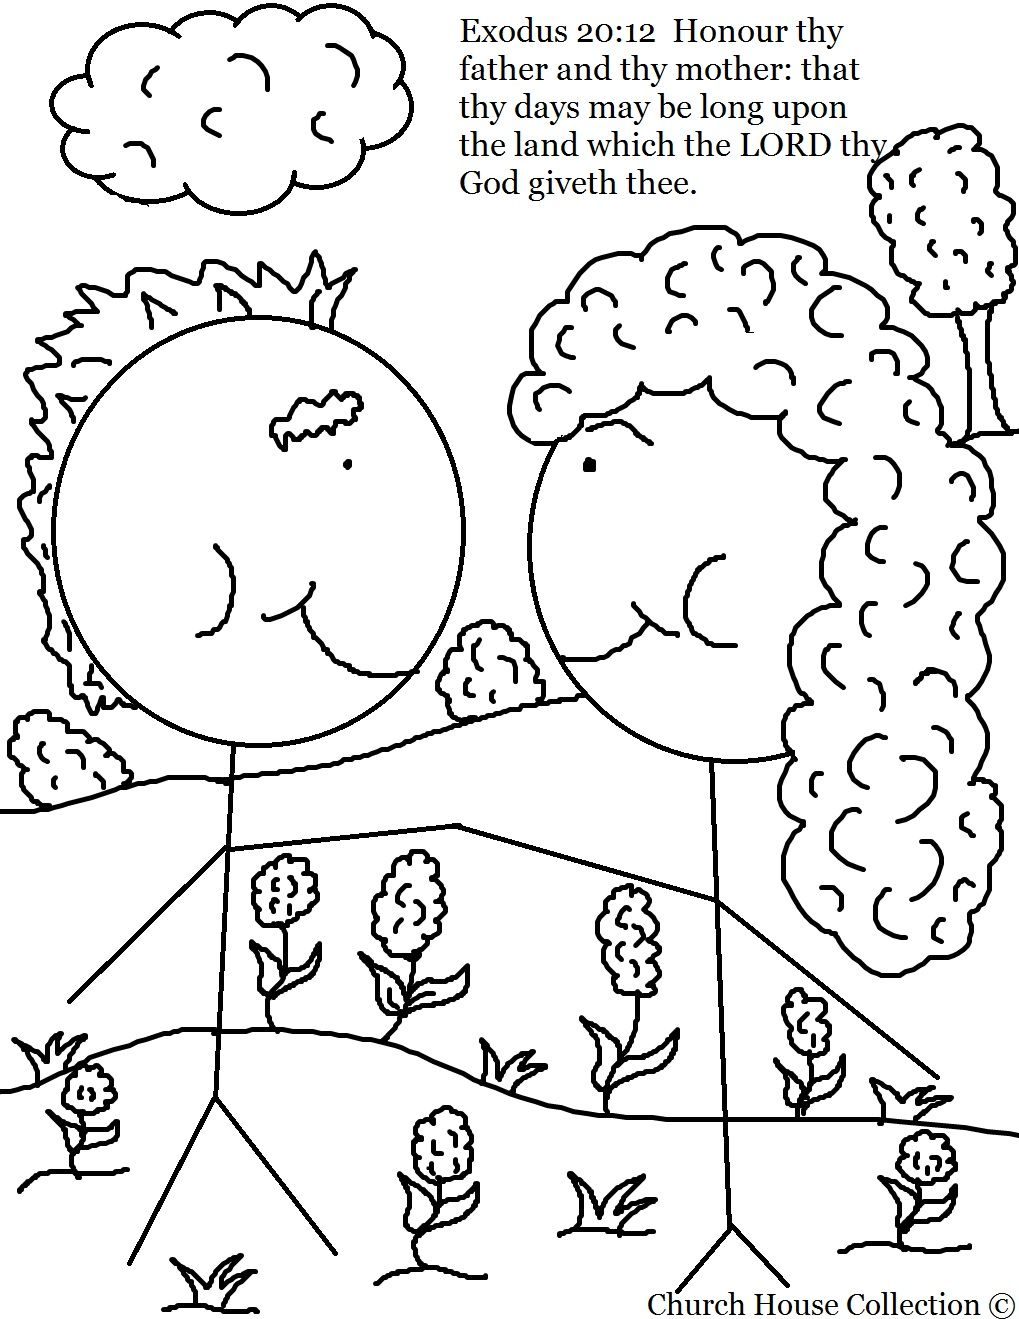 Coloring pages moses and ten commandments - Coloring Pages Ten Commandments Coloring Pages 1000 Images About Sunday School Stuff On Pinterest Coloring Pages